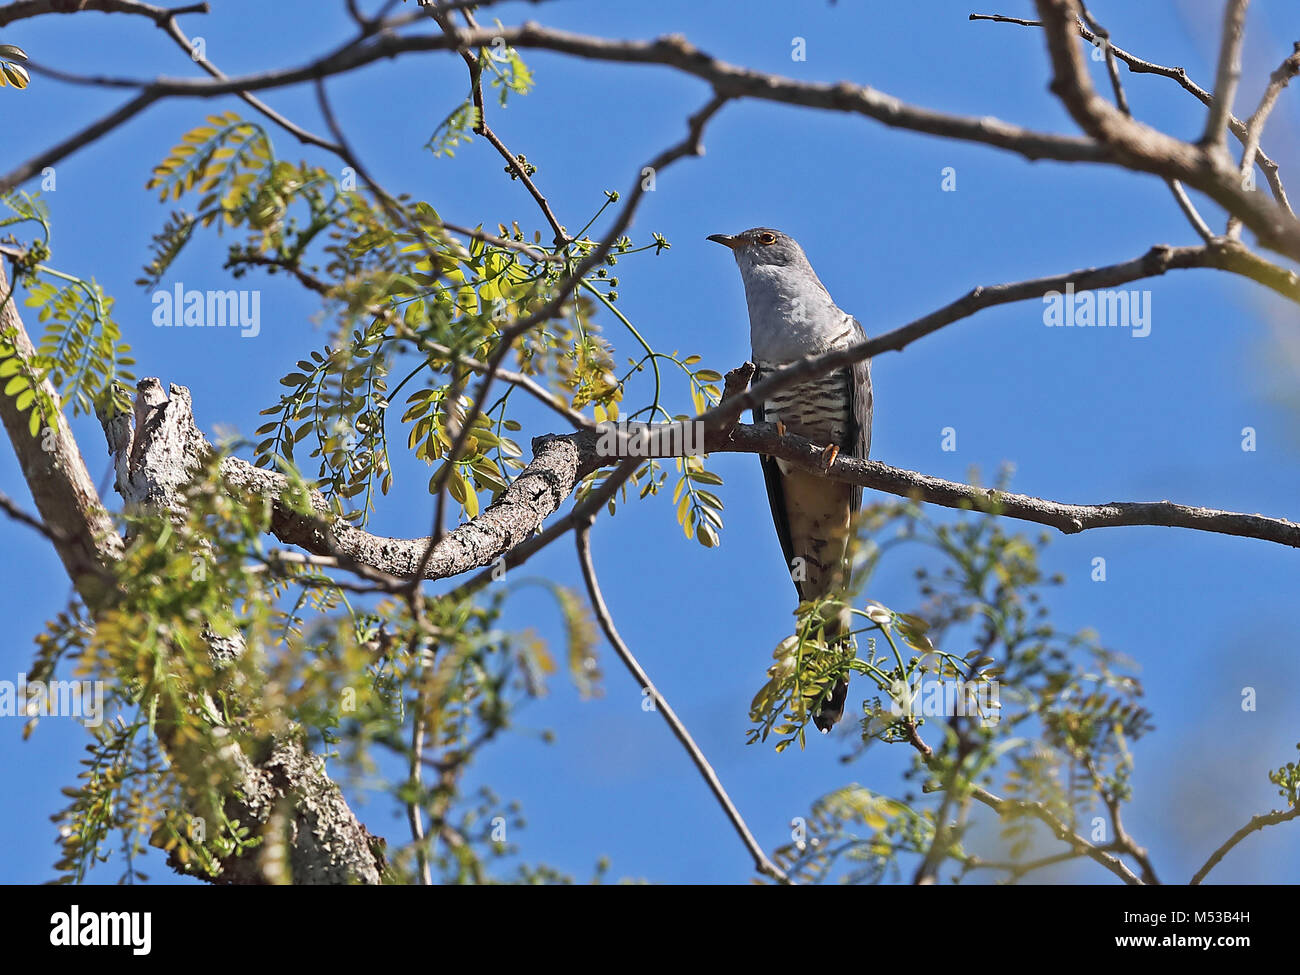 Madagascar Cuckoo (Cuculus rochii) adult male perched on branch, Madagascan endemic   Ampijoroa Forest Station, - Stock Image